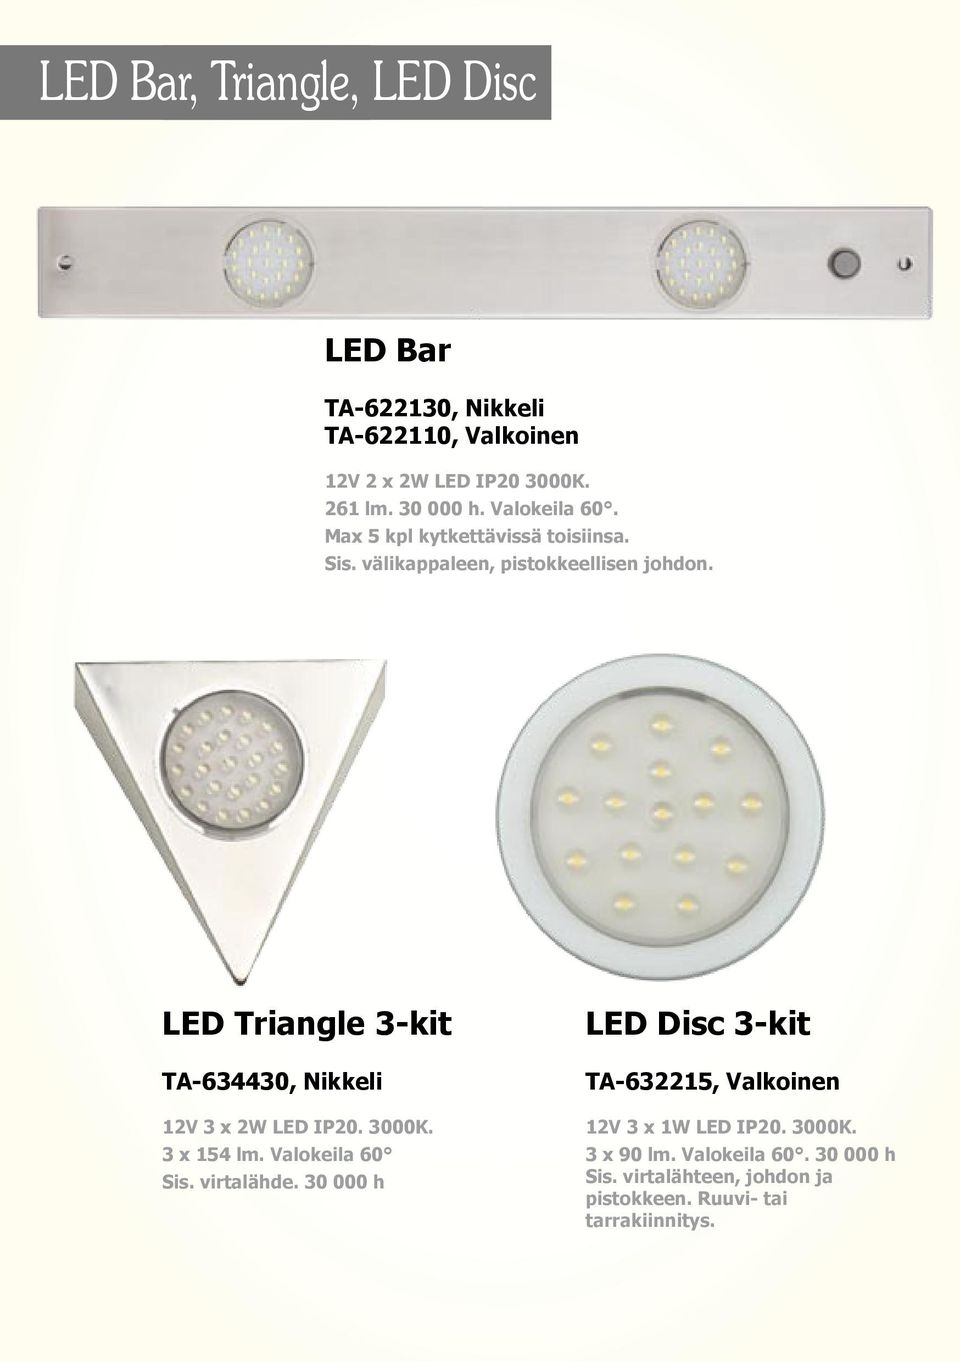 LED Triangle 3-kit TA-634430, Nikkeli 12V 3 x 2W LED IP20. 3000K. 3 x 154 lm. Valokeila 60 Sis. virtalähde.